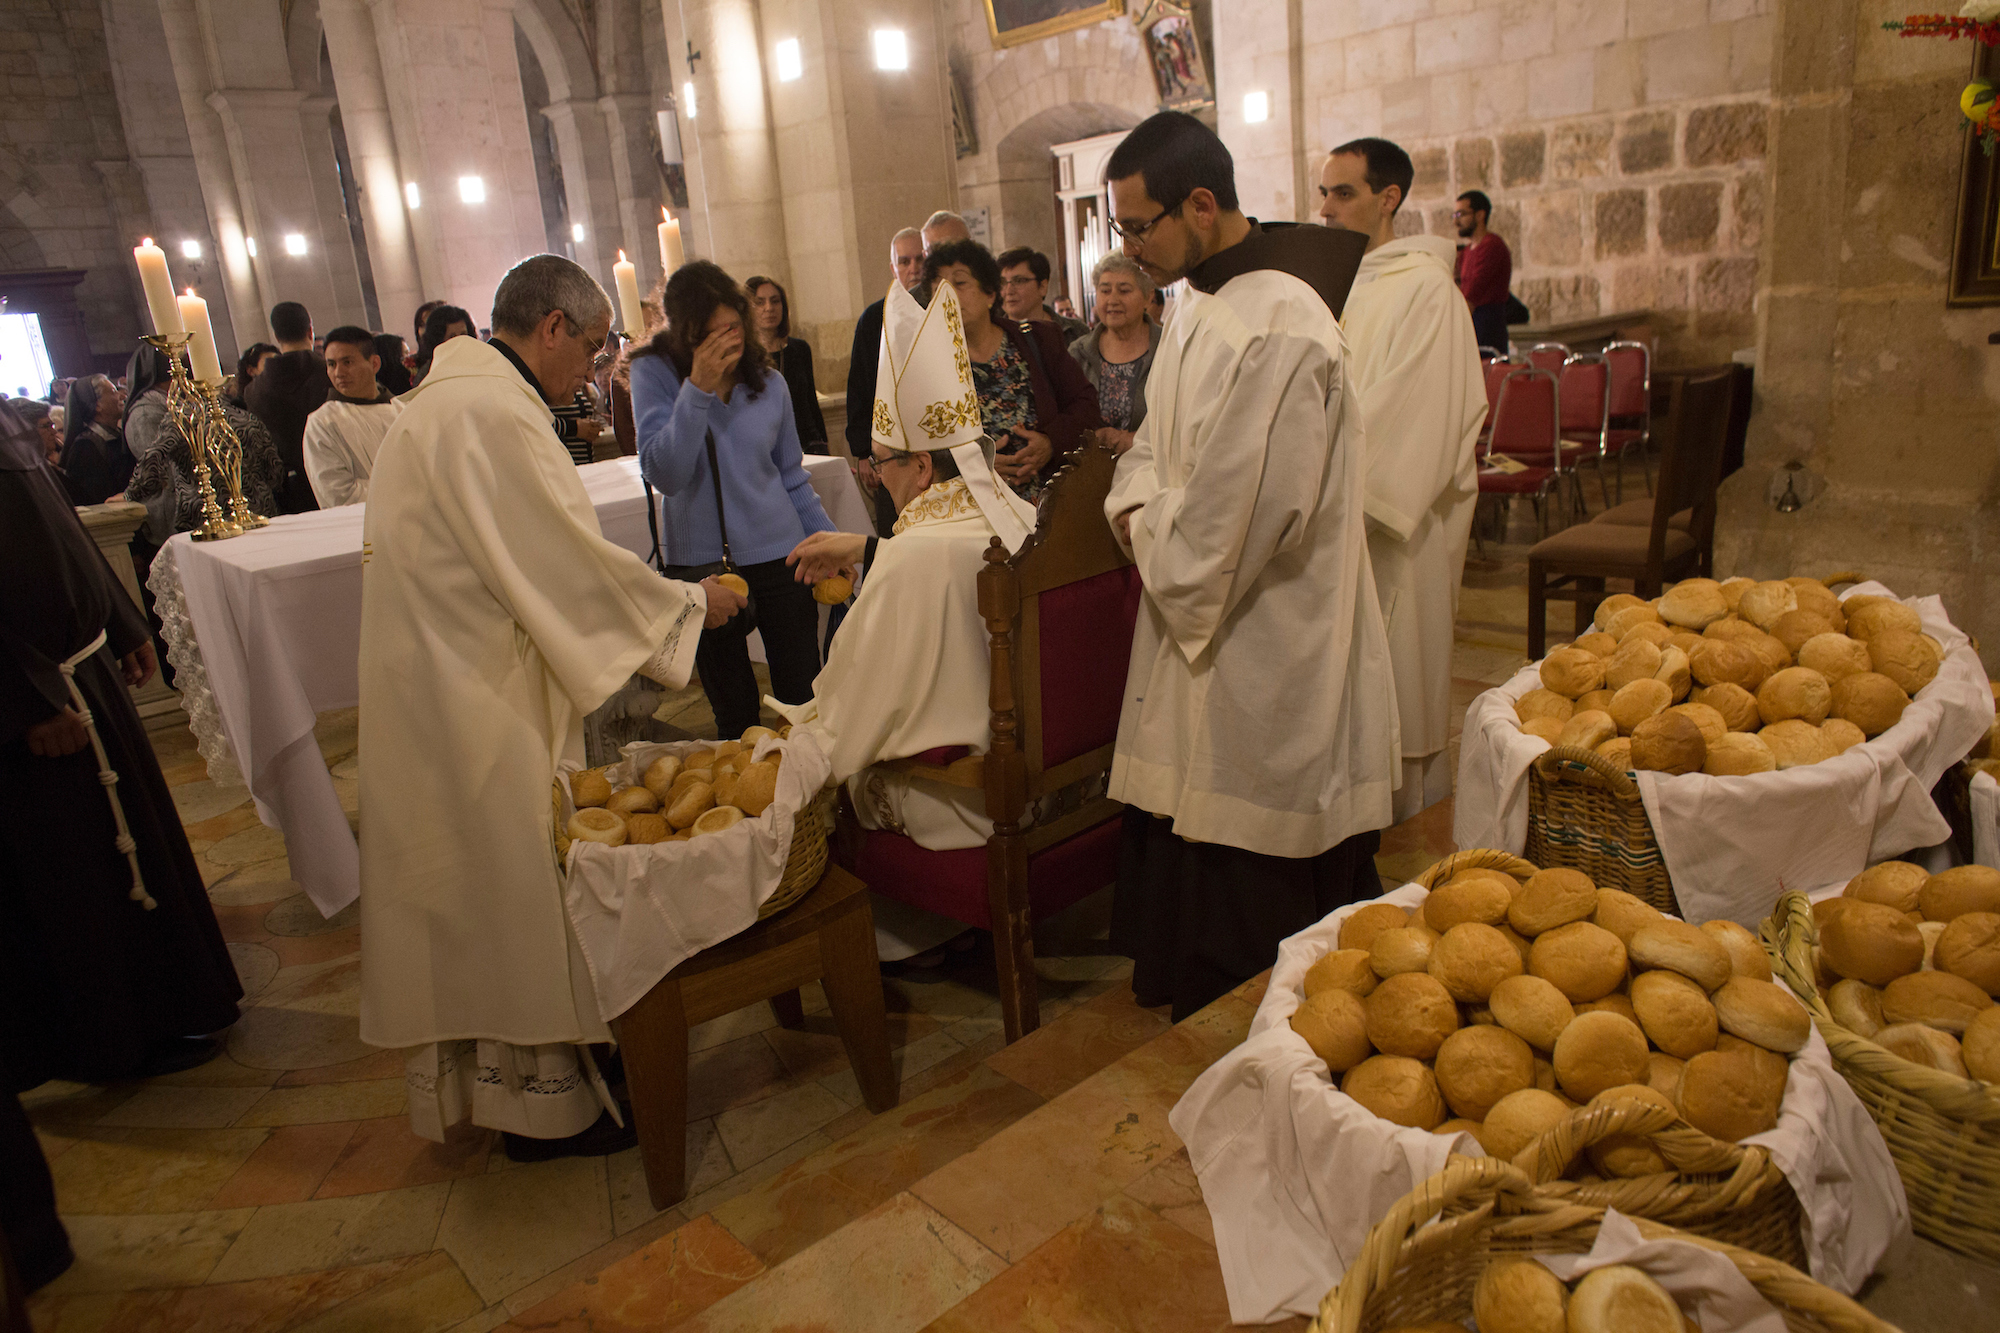 Christian clergymen hand out rolls of bread to worshippers, a tradition in Christian Masses. Over a thousand Christians from the West Bank, Jerusalem and other countries attended the Mass at the Franciscan Church of Emmaus in the West Bank village of El Qubeibehon on Monday, April 17, 2017. (Photo by Heidi Levine/GroundTruth)